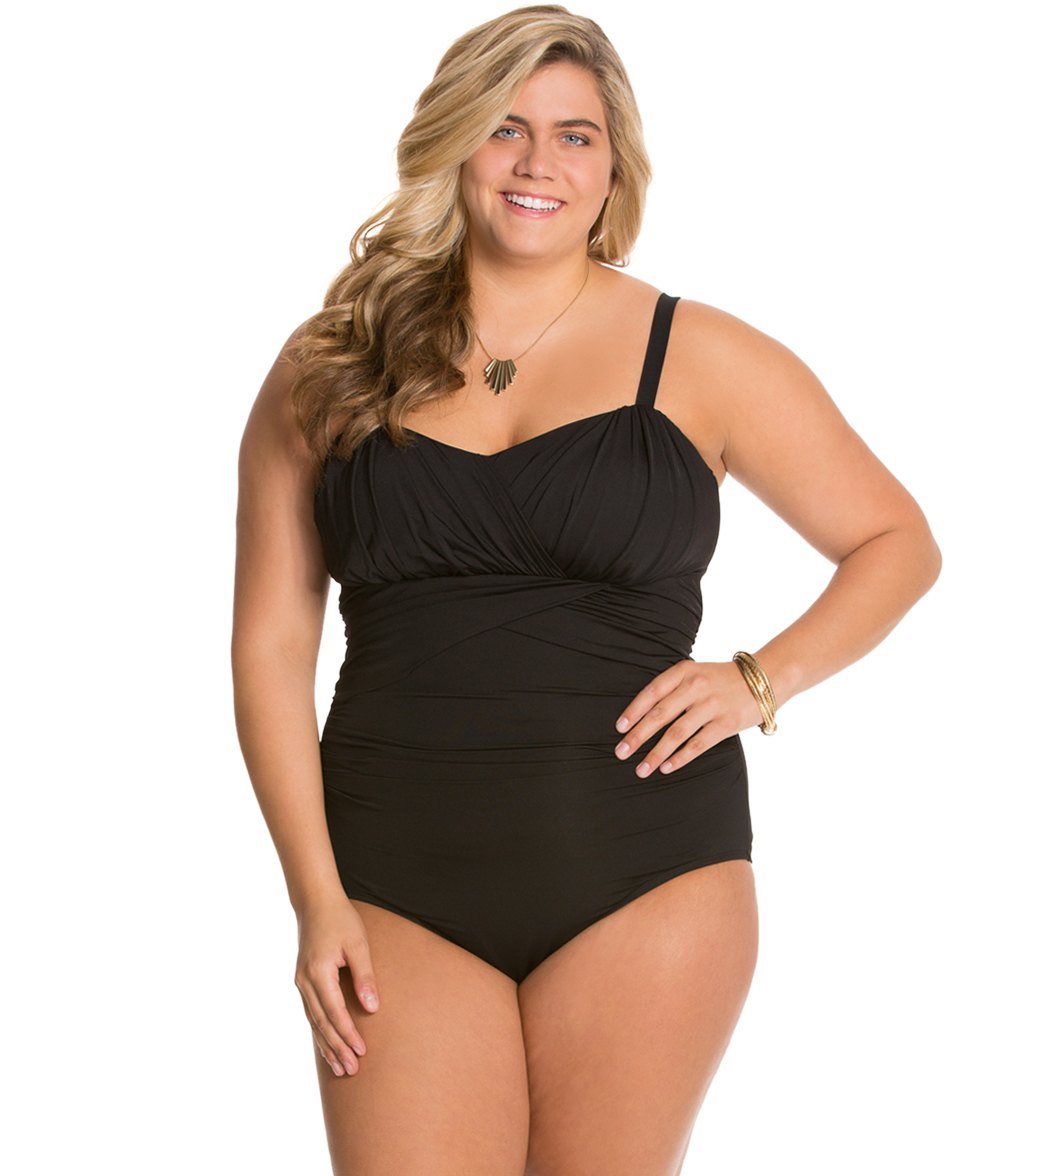 0f6752937ca ... Plus Size Drapey Solids Goddess Mio One Piece Swimsuit Play Video.  MODEL MEASUREMENTS